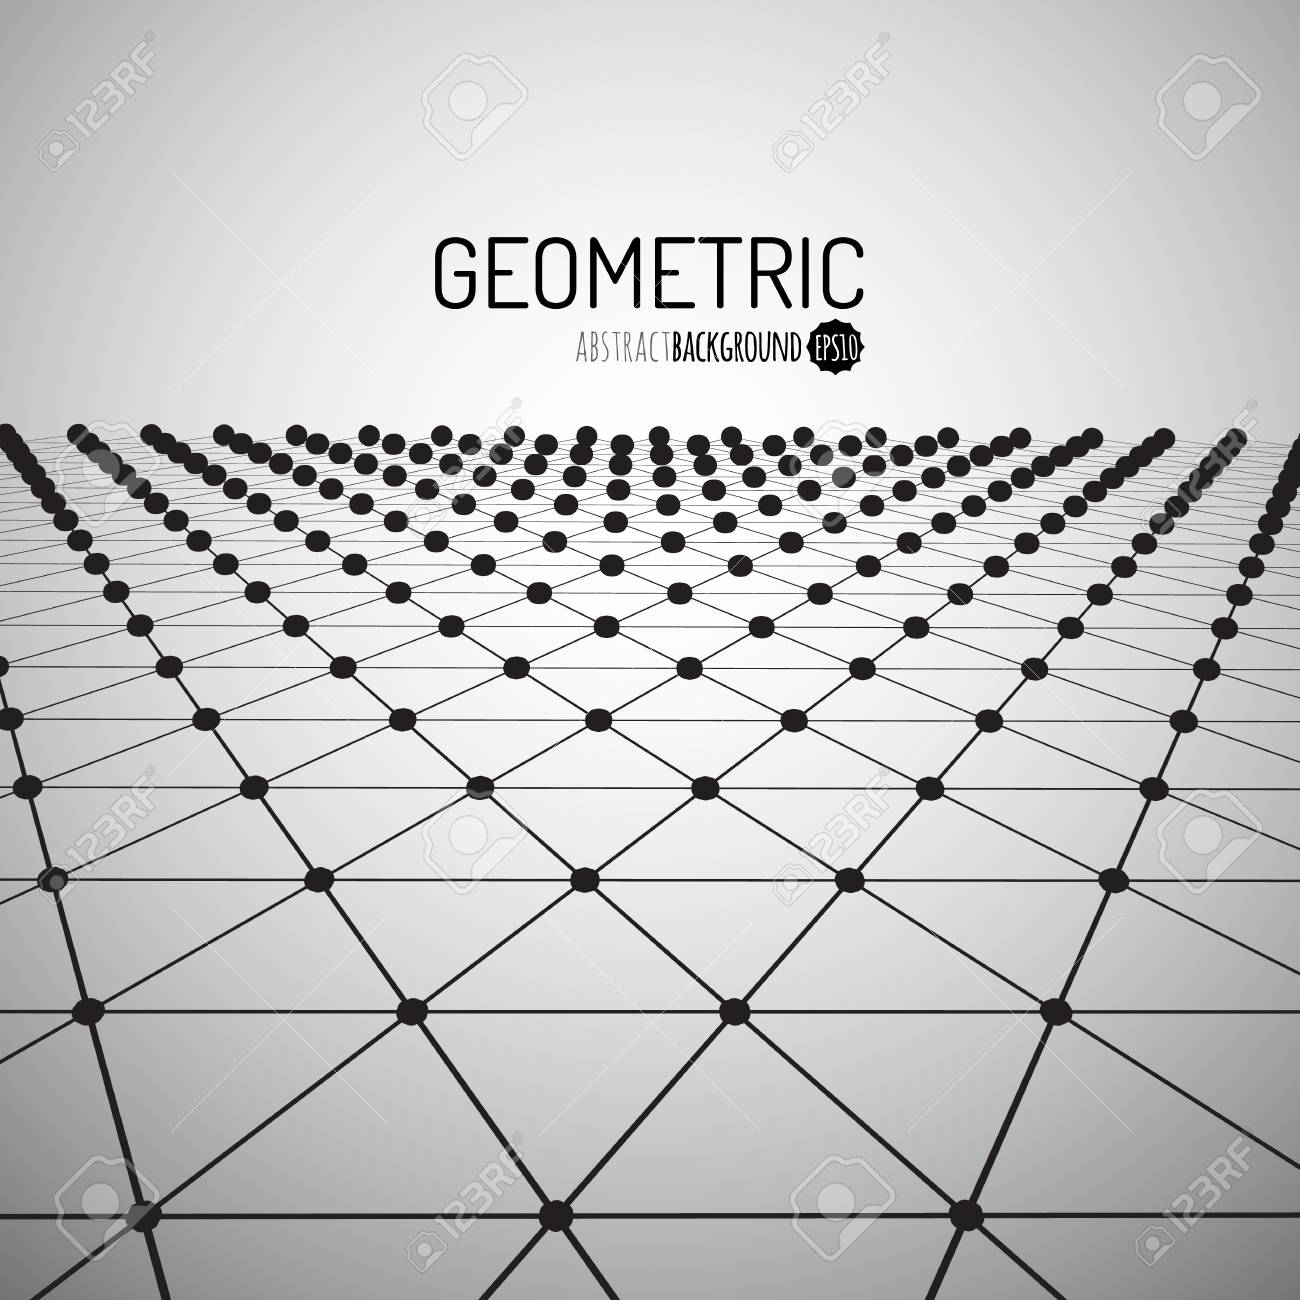 Technology vector geometric background. Futuristic concept. Connected triangles with dots. Vector illustration - 55756423